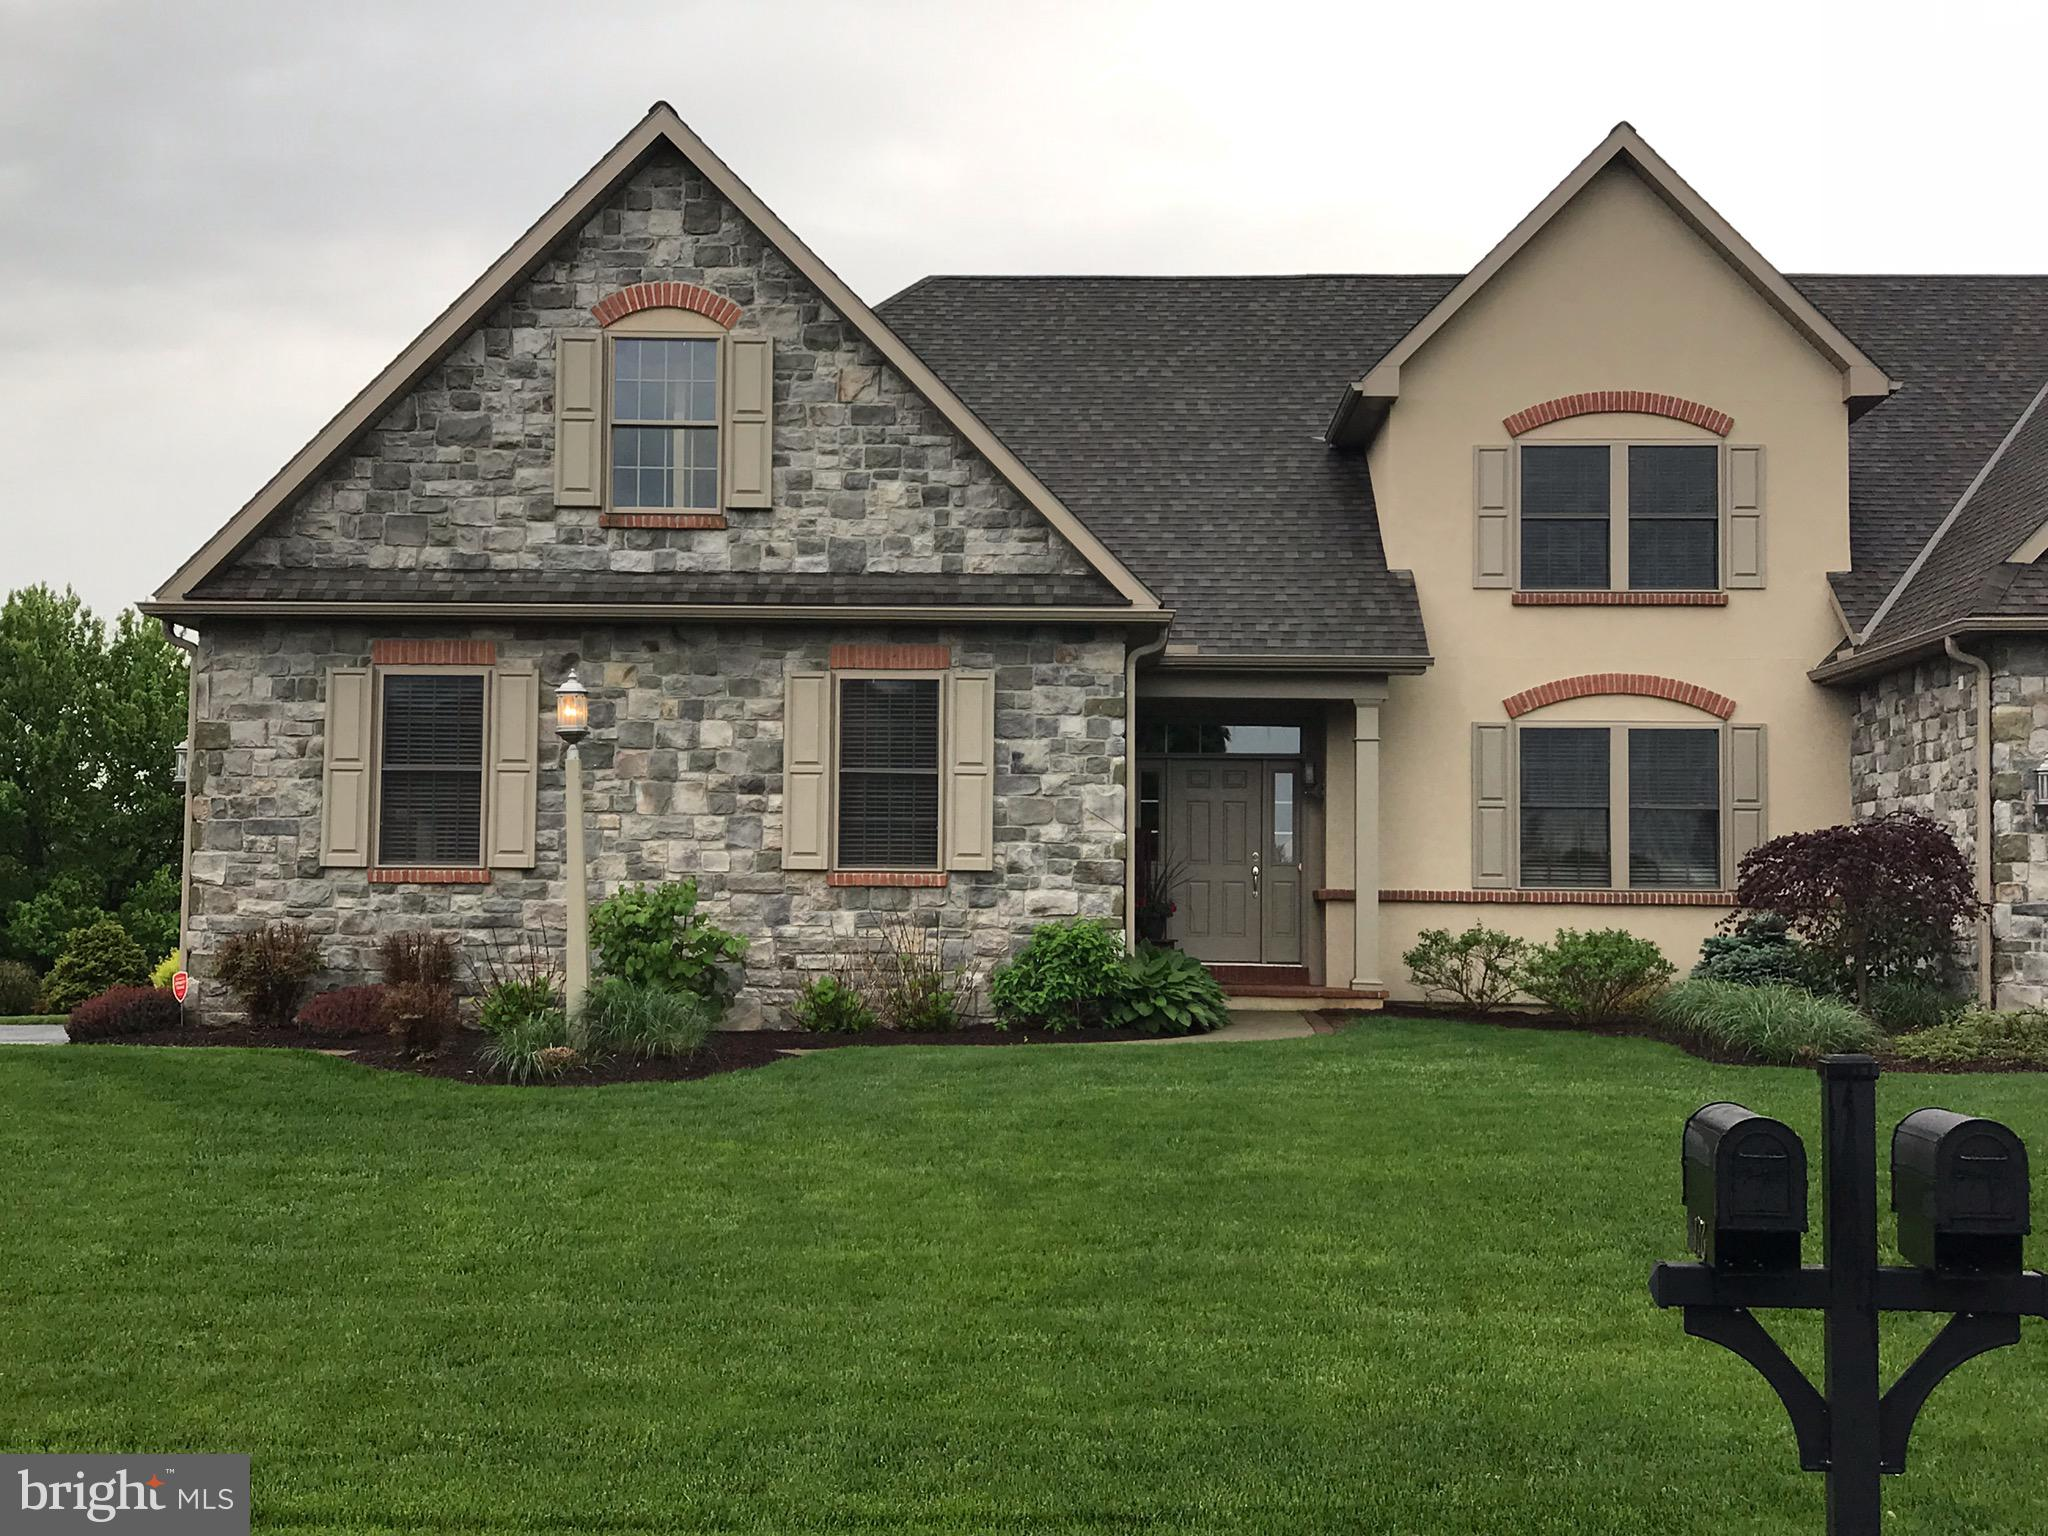 176 N TANGLEWOOD DRIVE, QUARRYVILLE, PA 17566